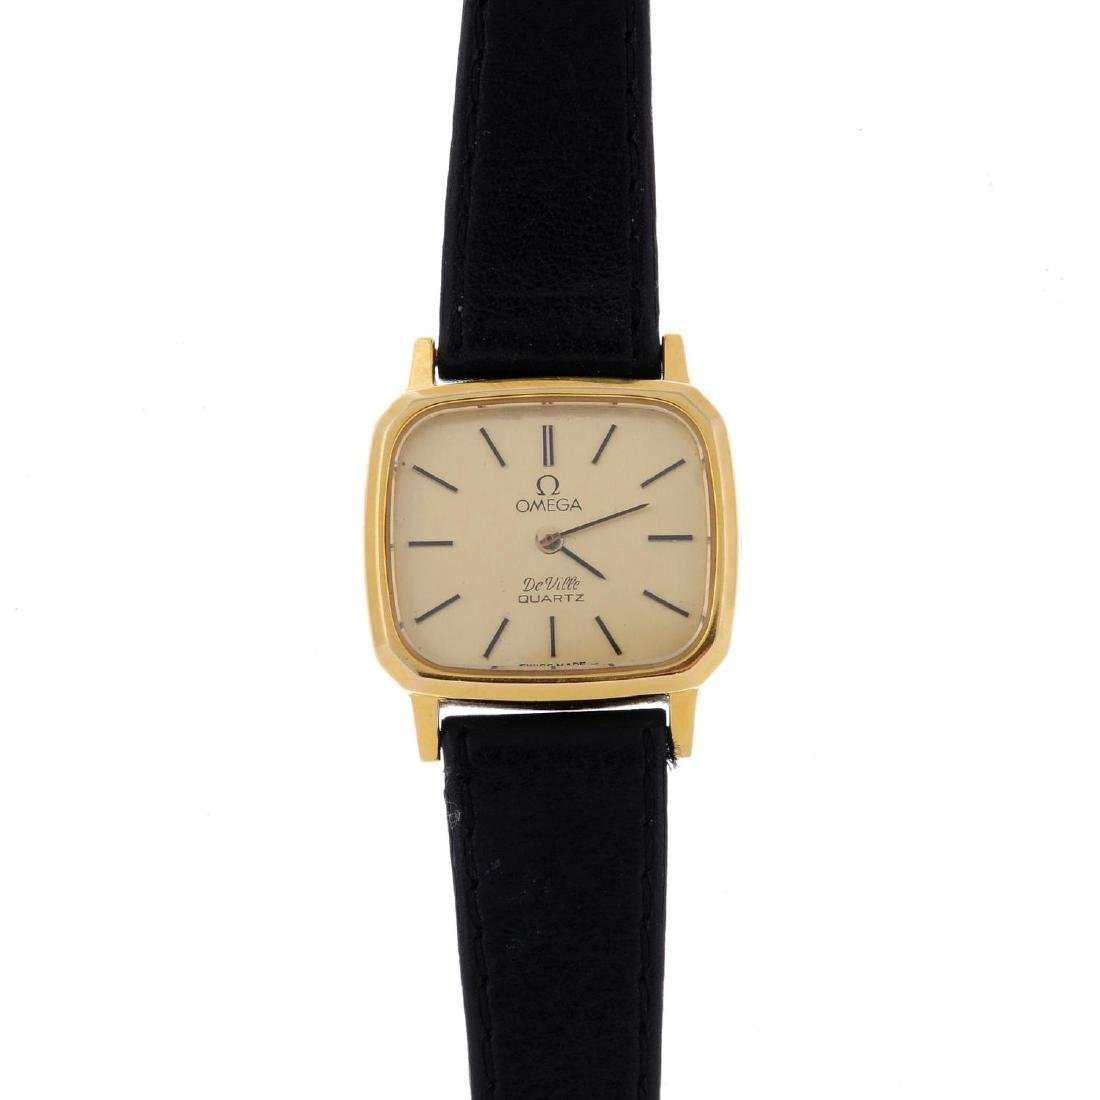 OMEGA - a lady's De Ville wrist watch. Gold plated case